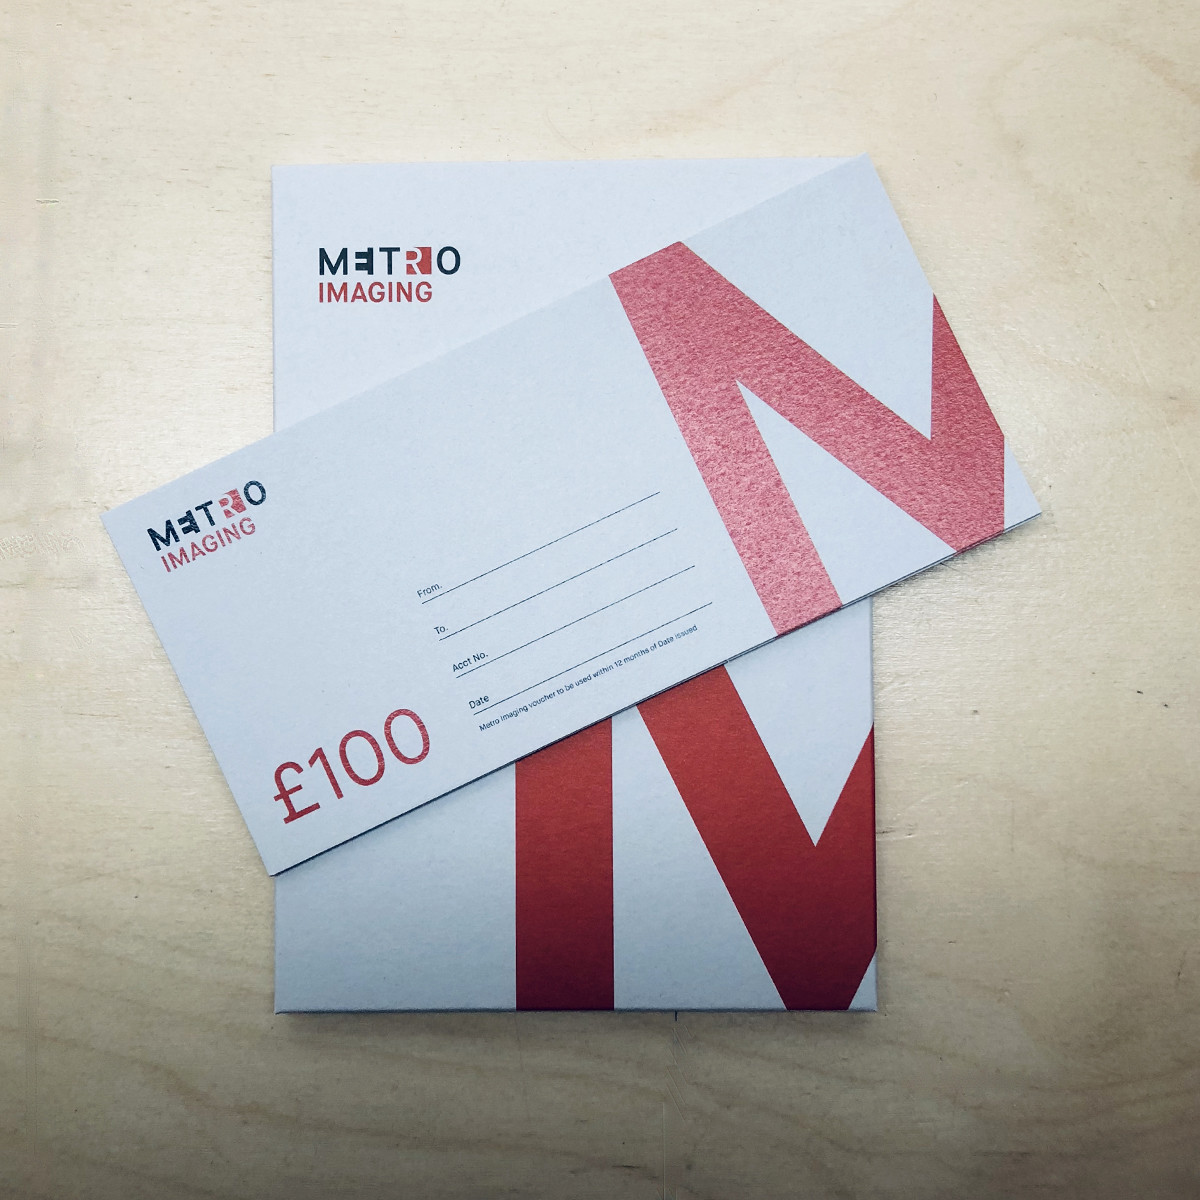 We've listed all our print, processing and framing deadlines below for you to use as a handy guide this Festive Season. And, for those of you last minute Christmas shoppers – don't worry, we have plenty of Metro Imaging Gift Vouchers and film stocked in our front of house right up until Friday 21st December   CHRISTMAS DEADLINE […]